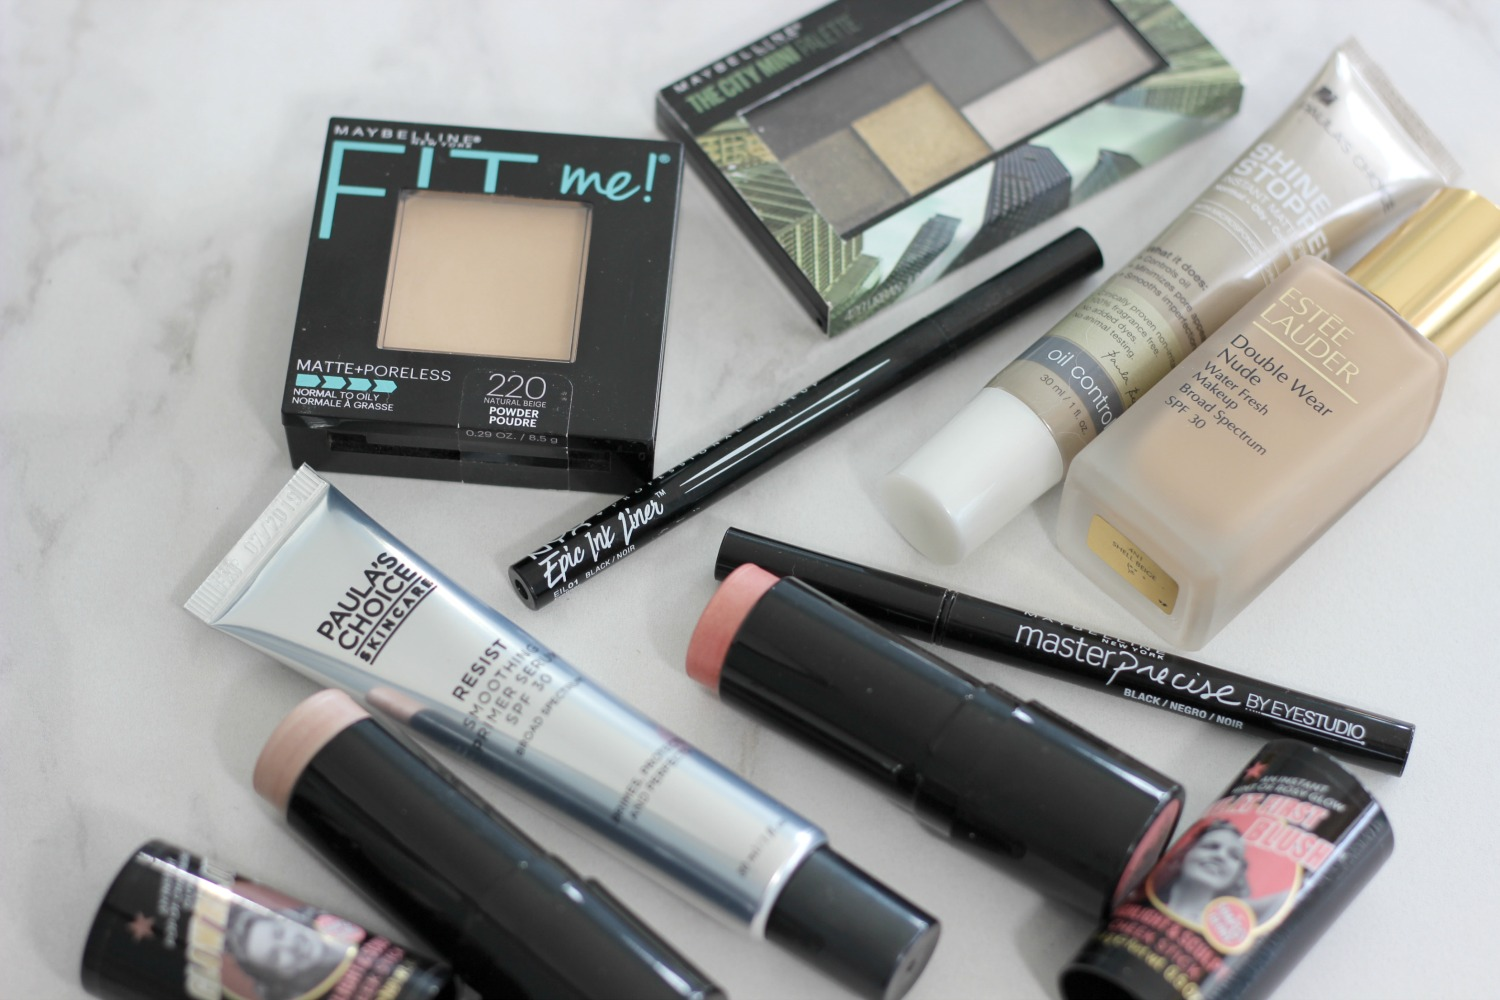 new beauty products i'm currently testing from Maybelline, NYX, Paula's Choice, Soap and Glory and Estee Lauder